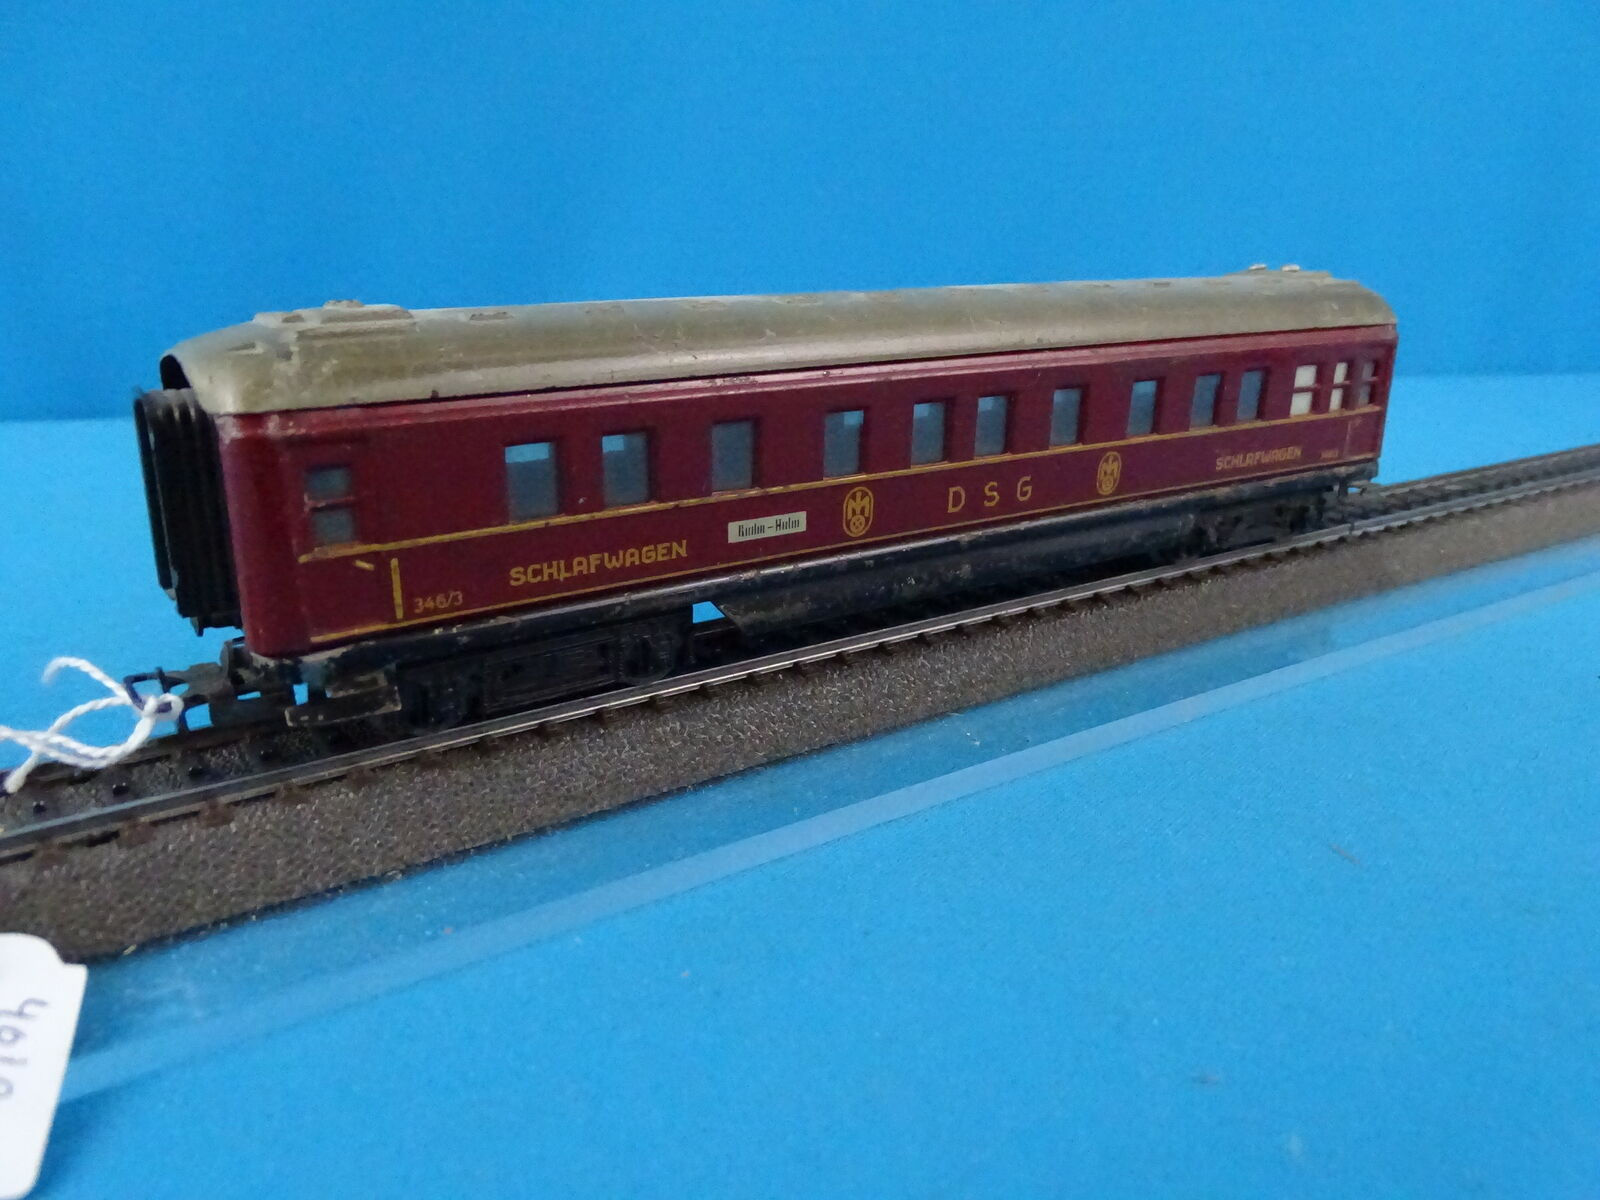 Marklin 346 3 4010 Sleeping car rosso vers. 6 in rosso 50-ies OVP